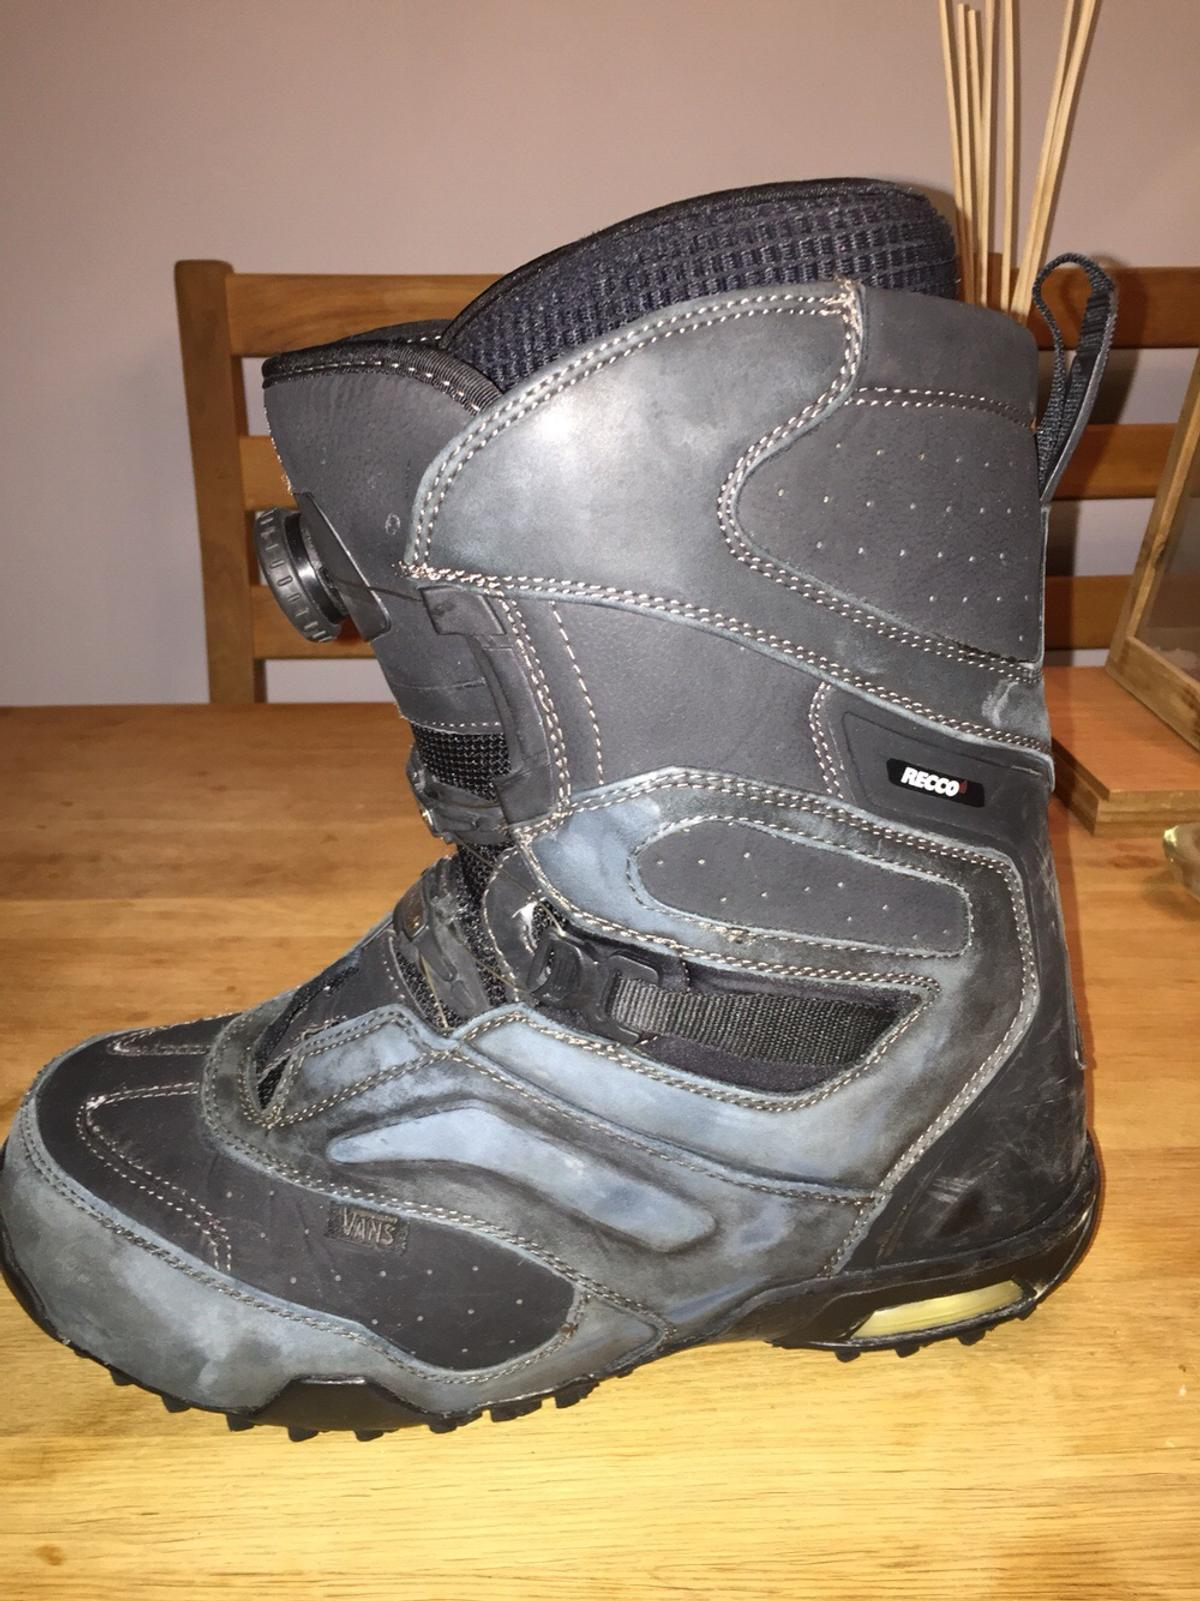 07c81790 Vans contra size 11 snowboard boots in WD18 Rivers für € 20,00 ...